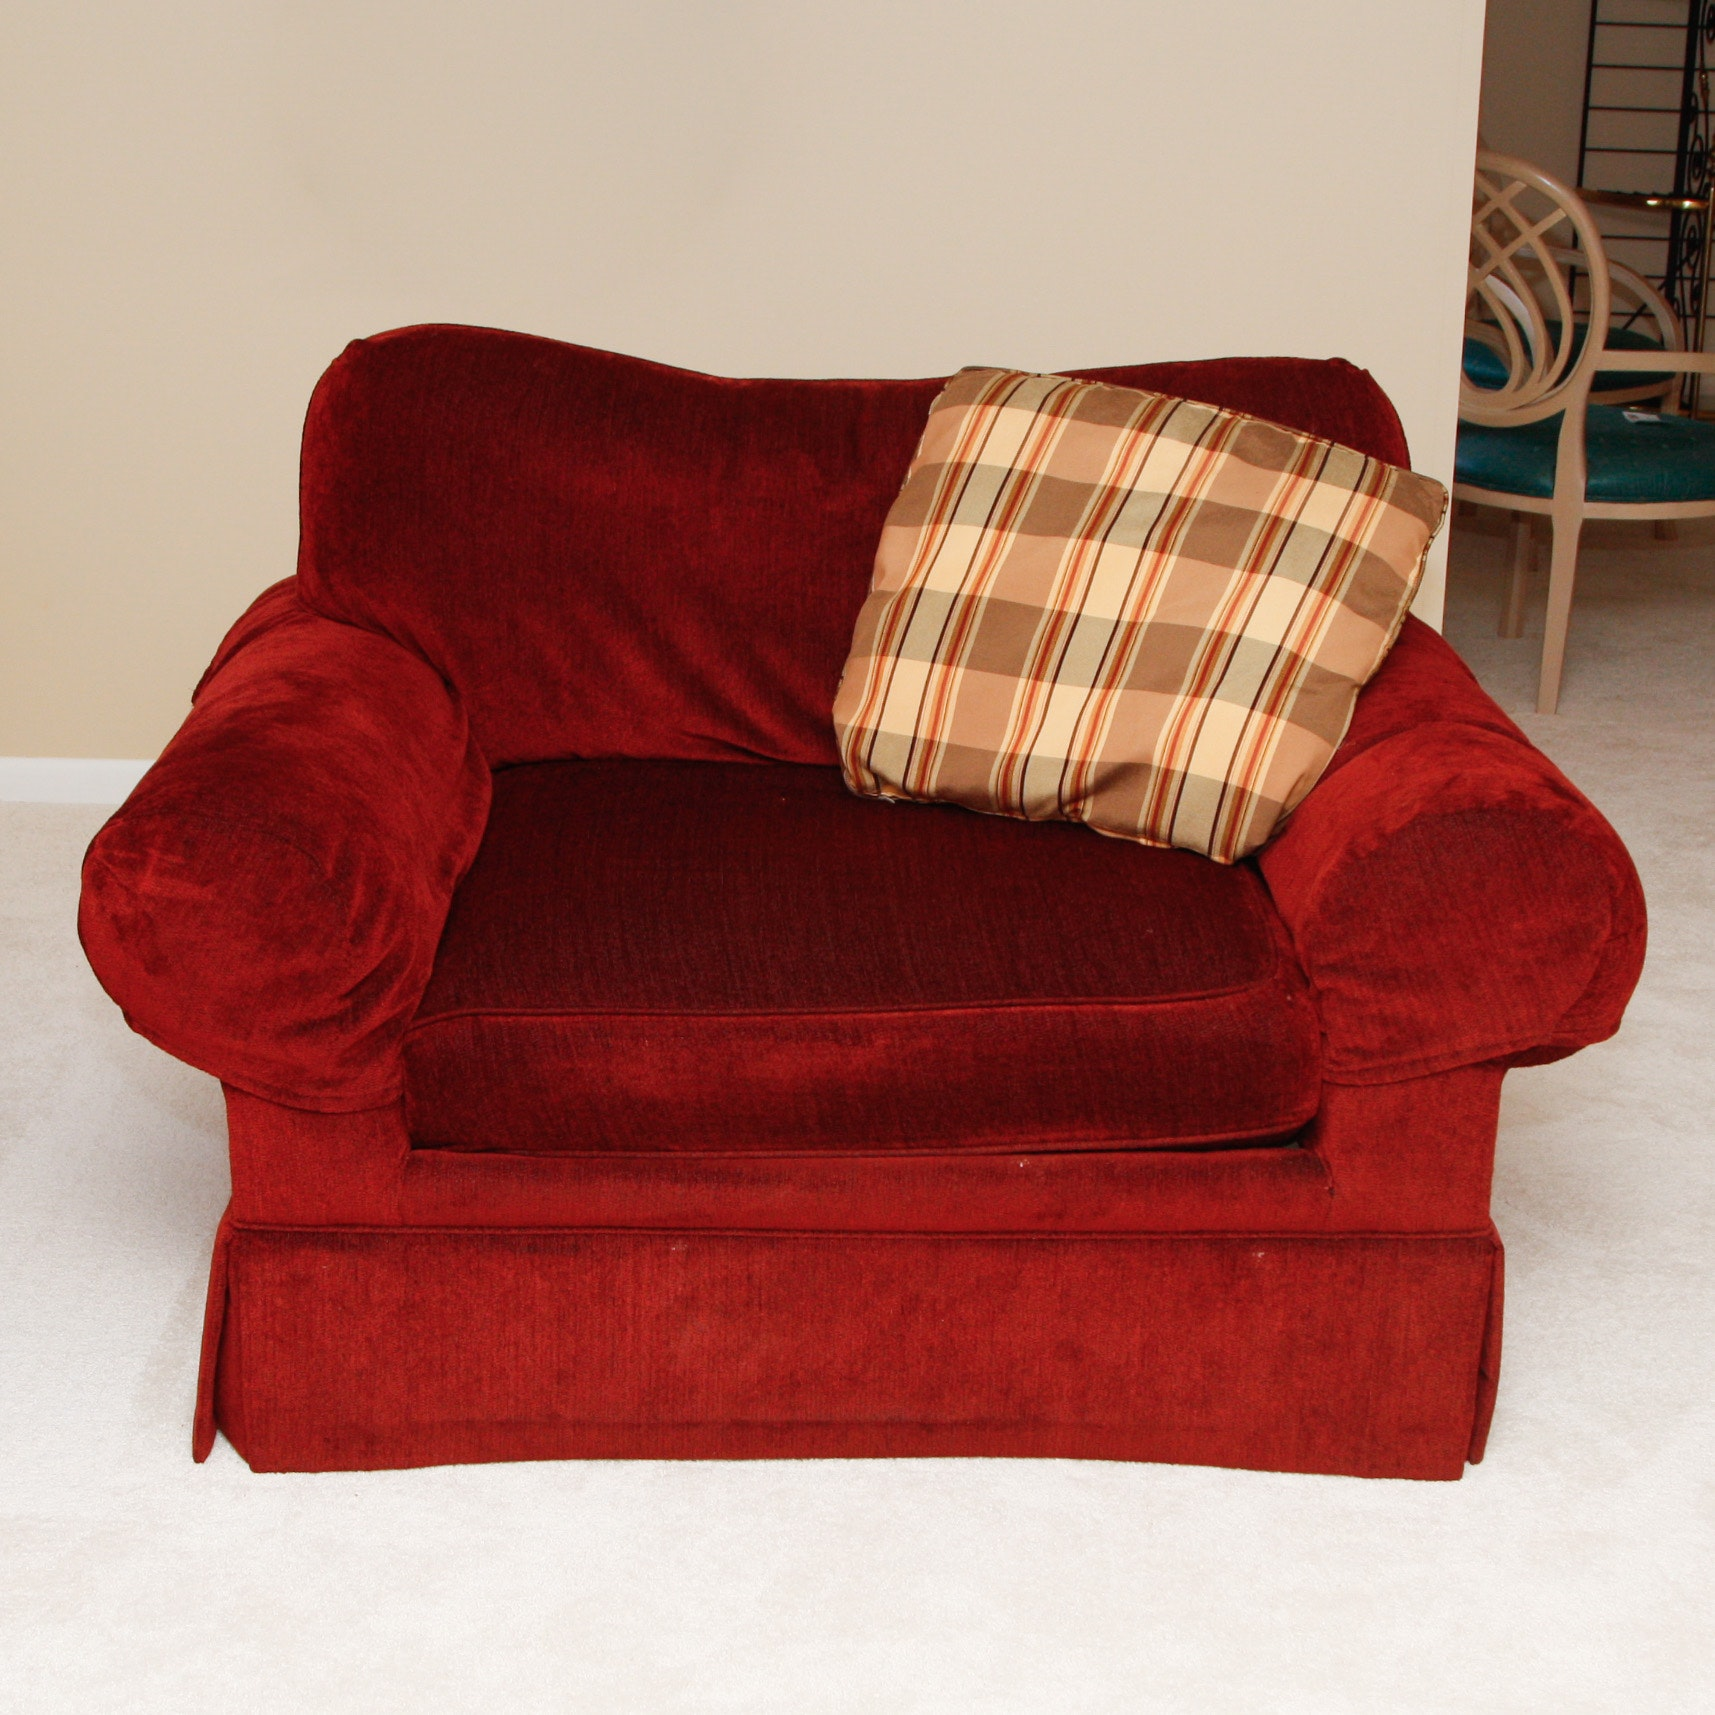 Hickory Chair Co. Red Upholstered Armchair